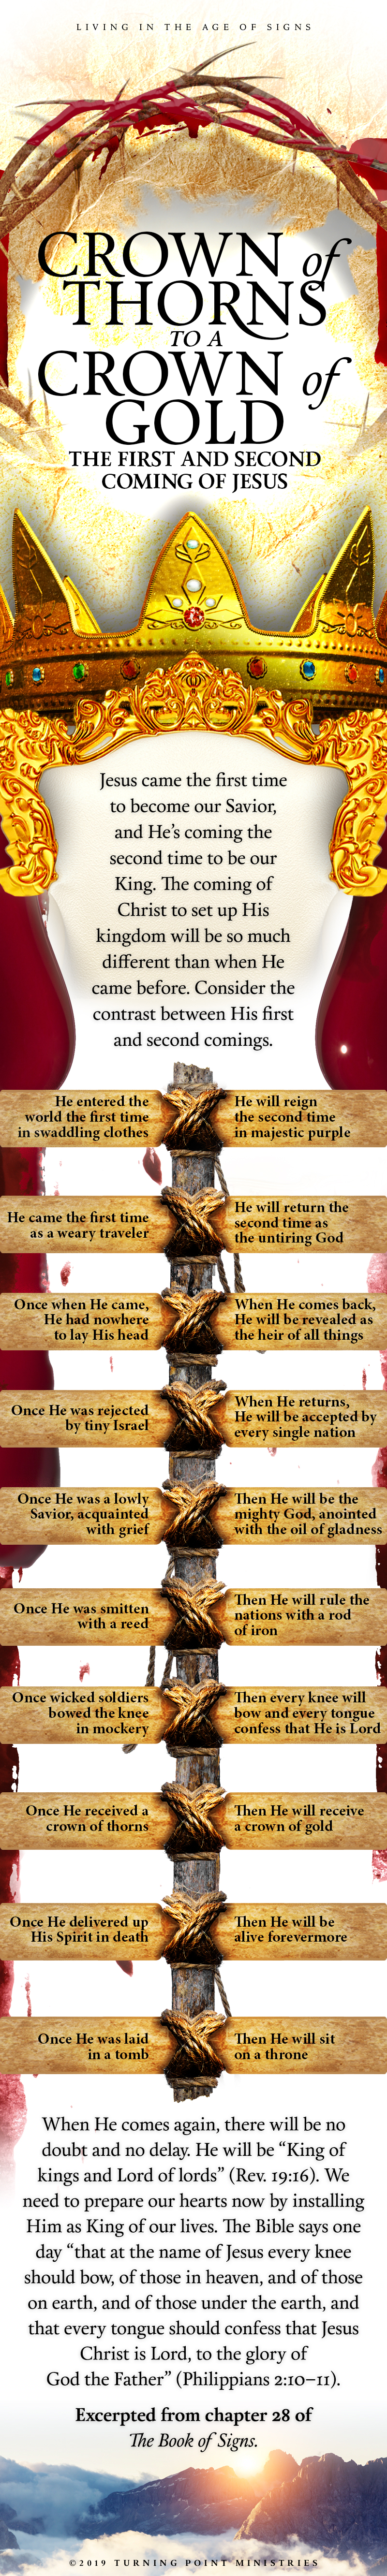 From a Crown of Thorns to a Crown of Gold: The First and Second Coming of Jesus